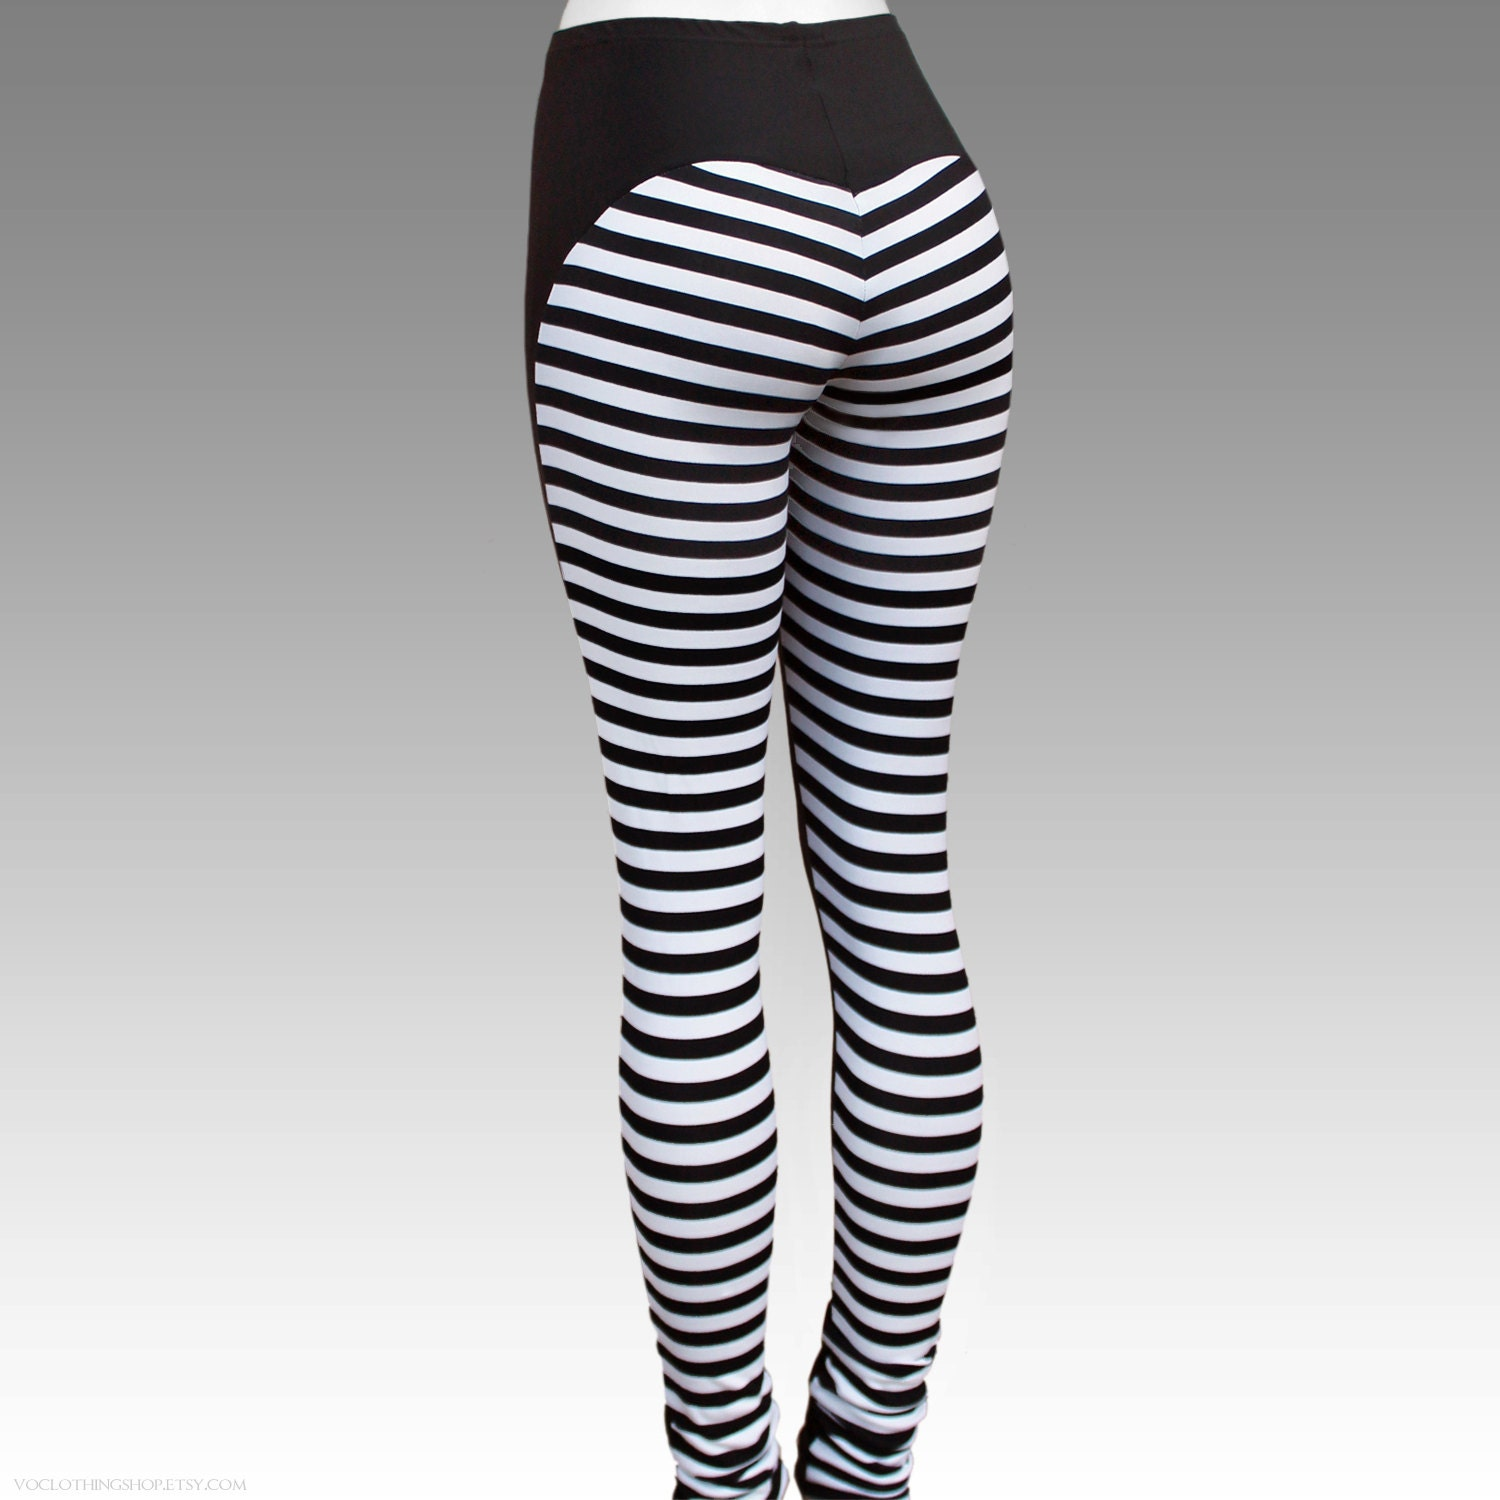 BLACK WIDOW white striped matte spandex leggings size medium